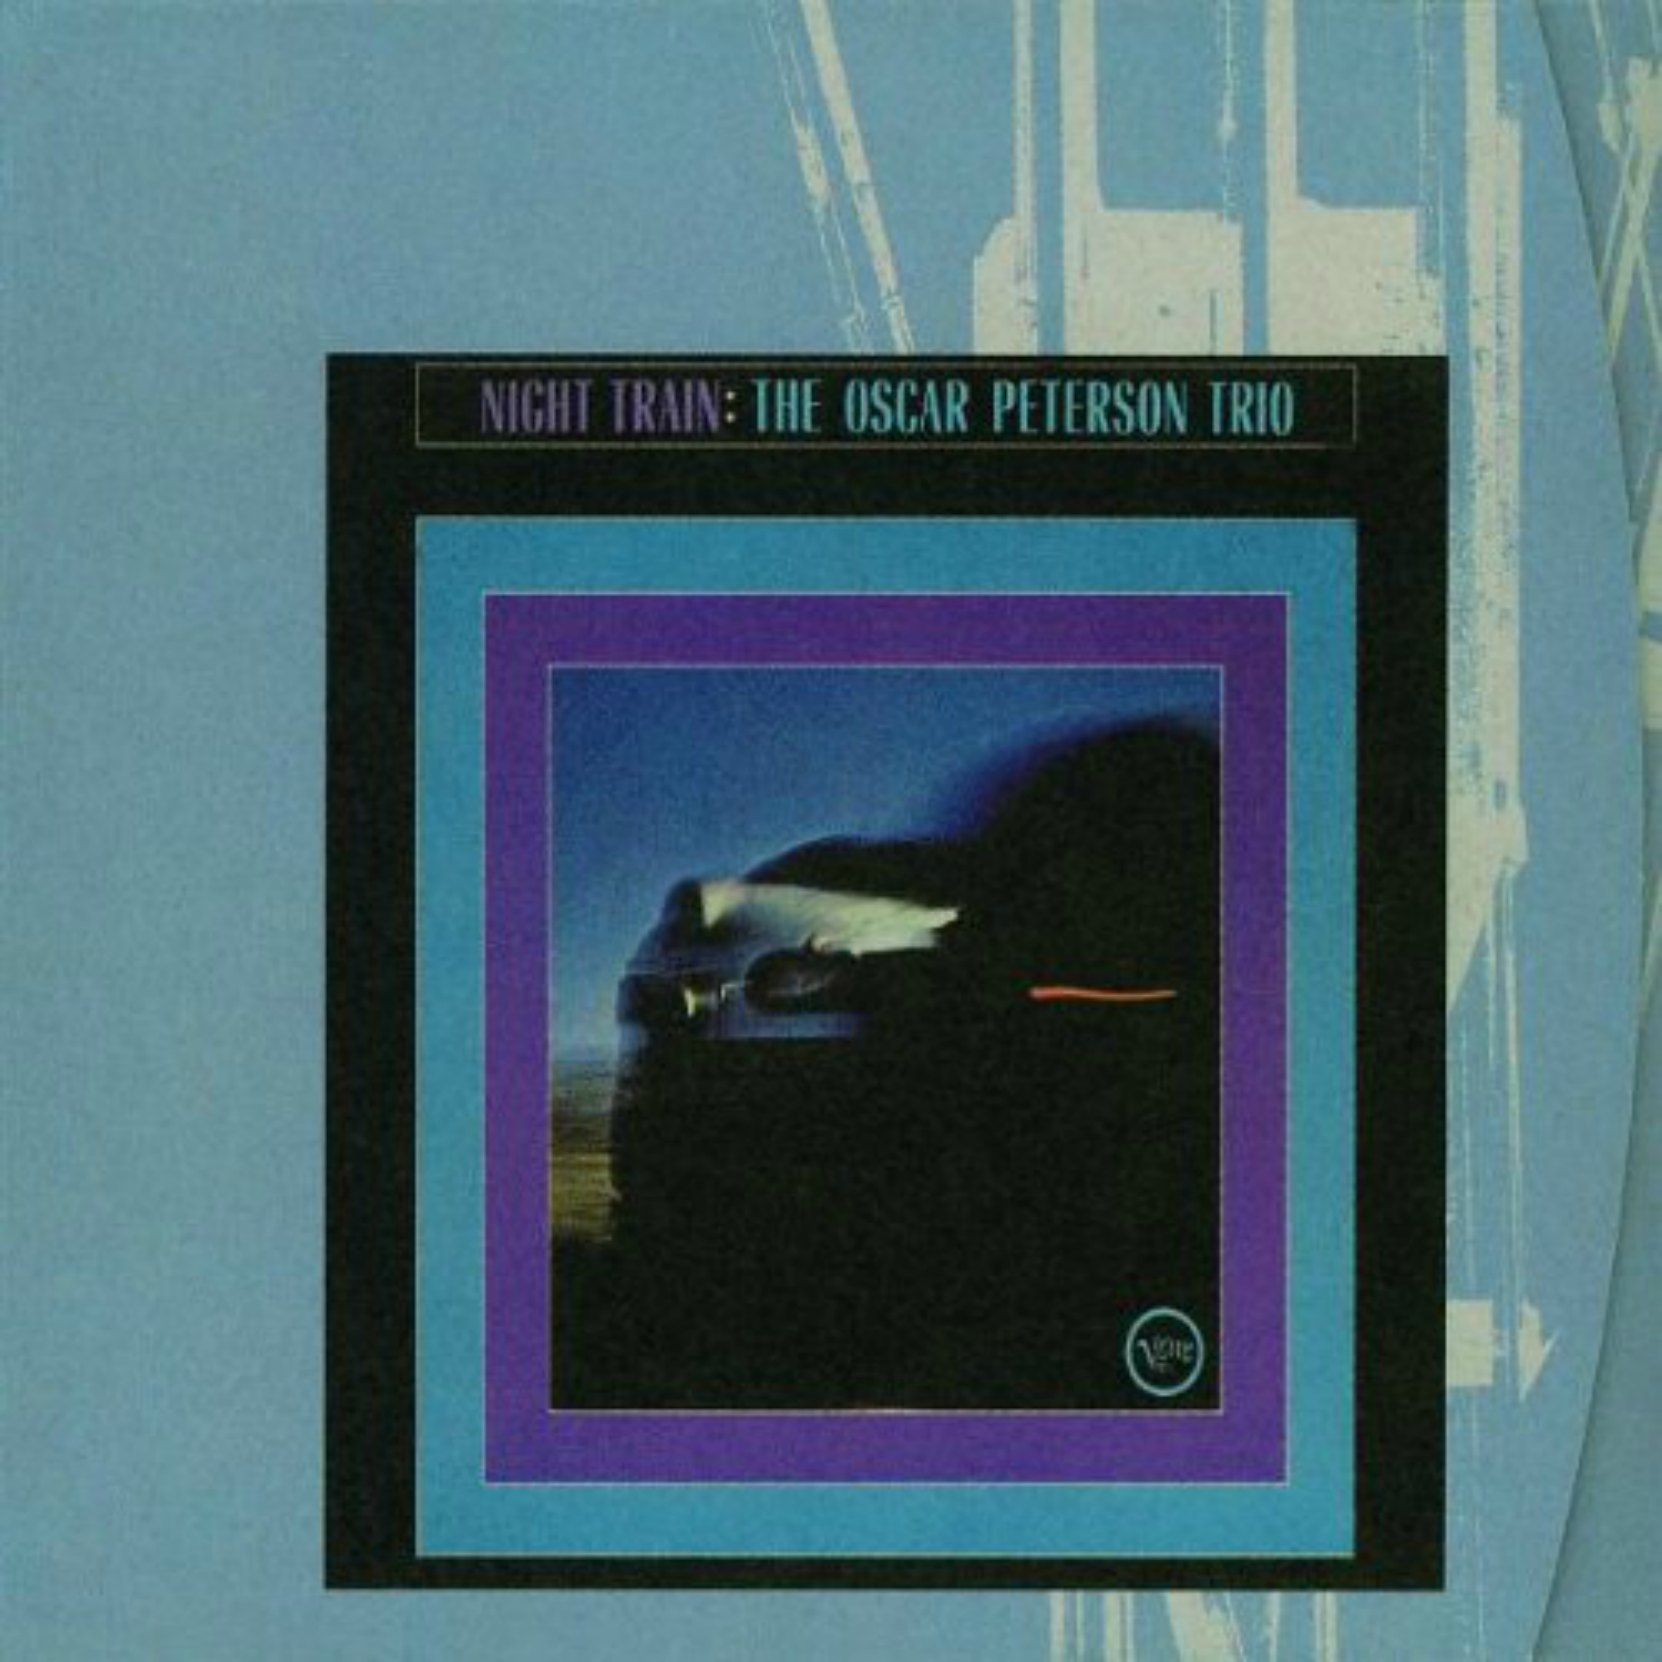 CD cover, Night Train: Oscar Peterson Trio - Verve Records